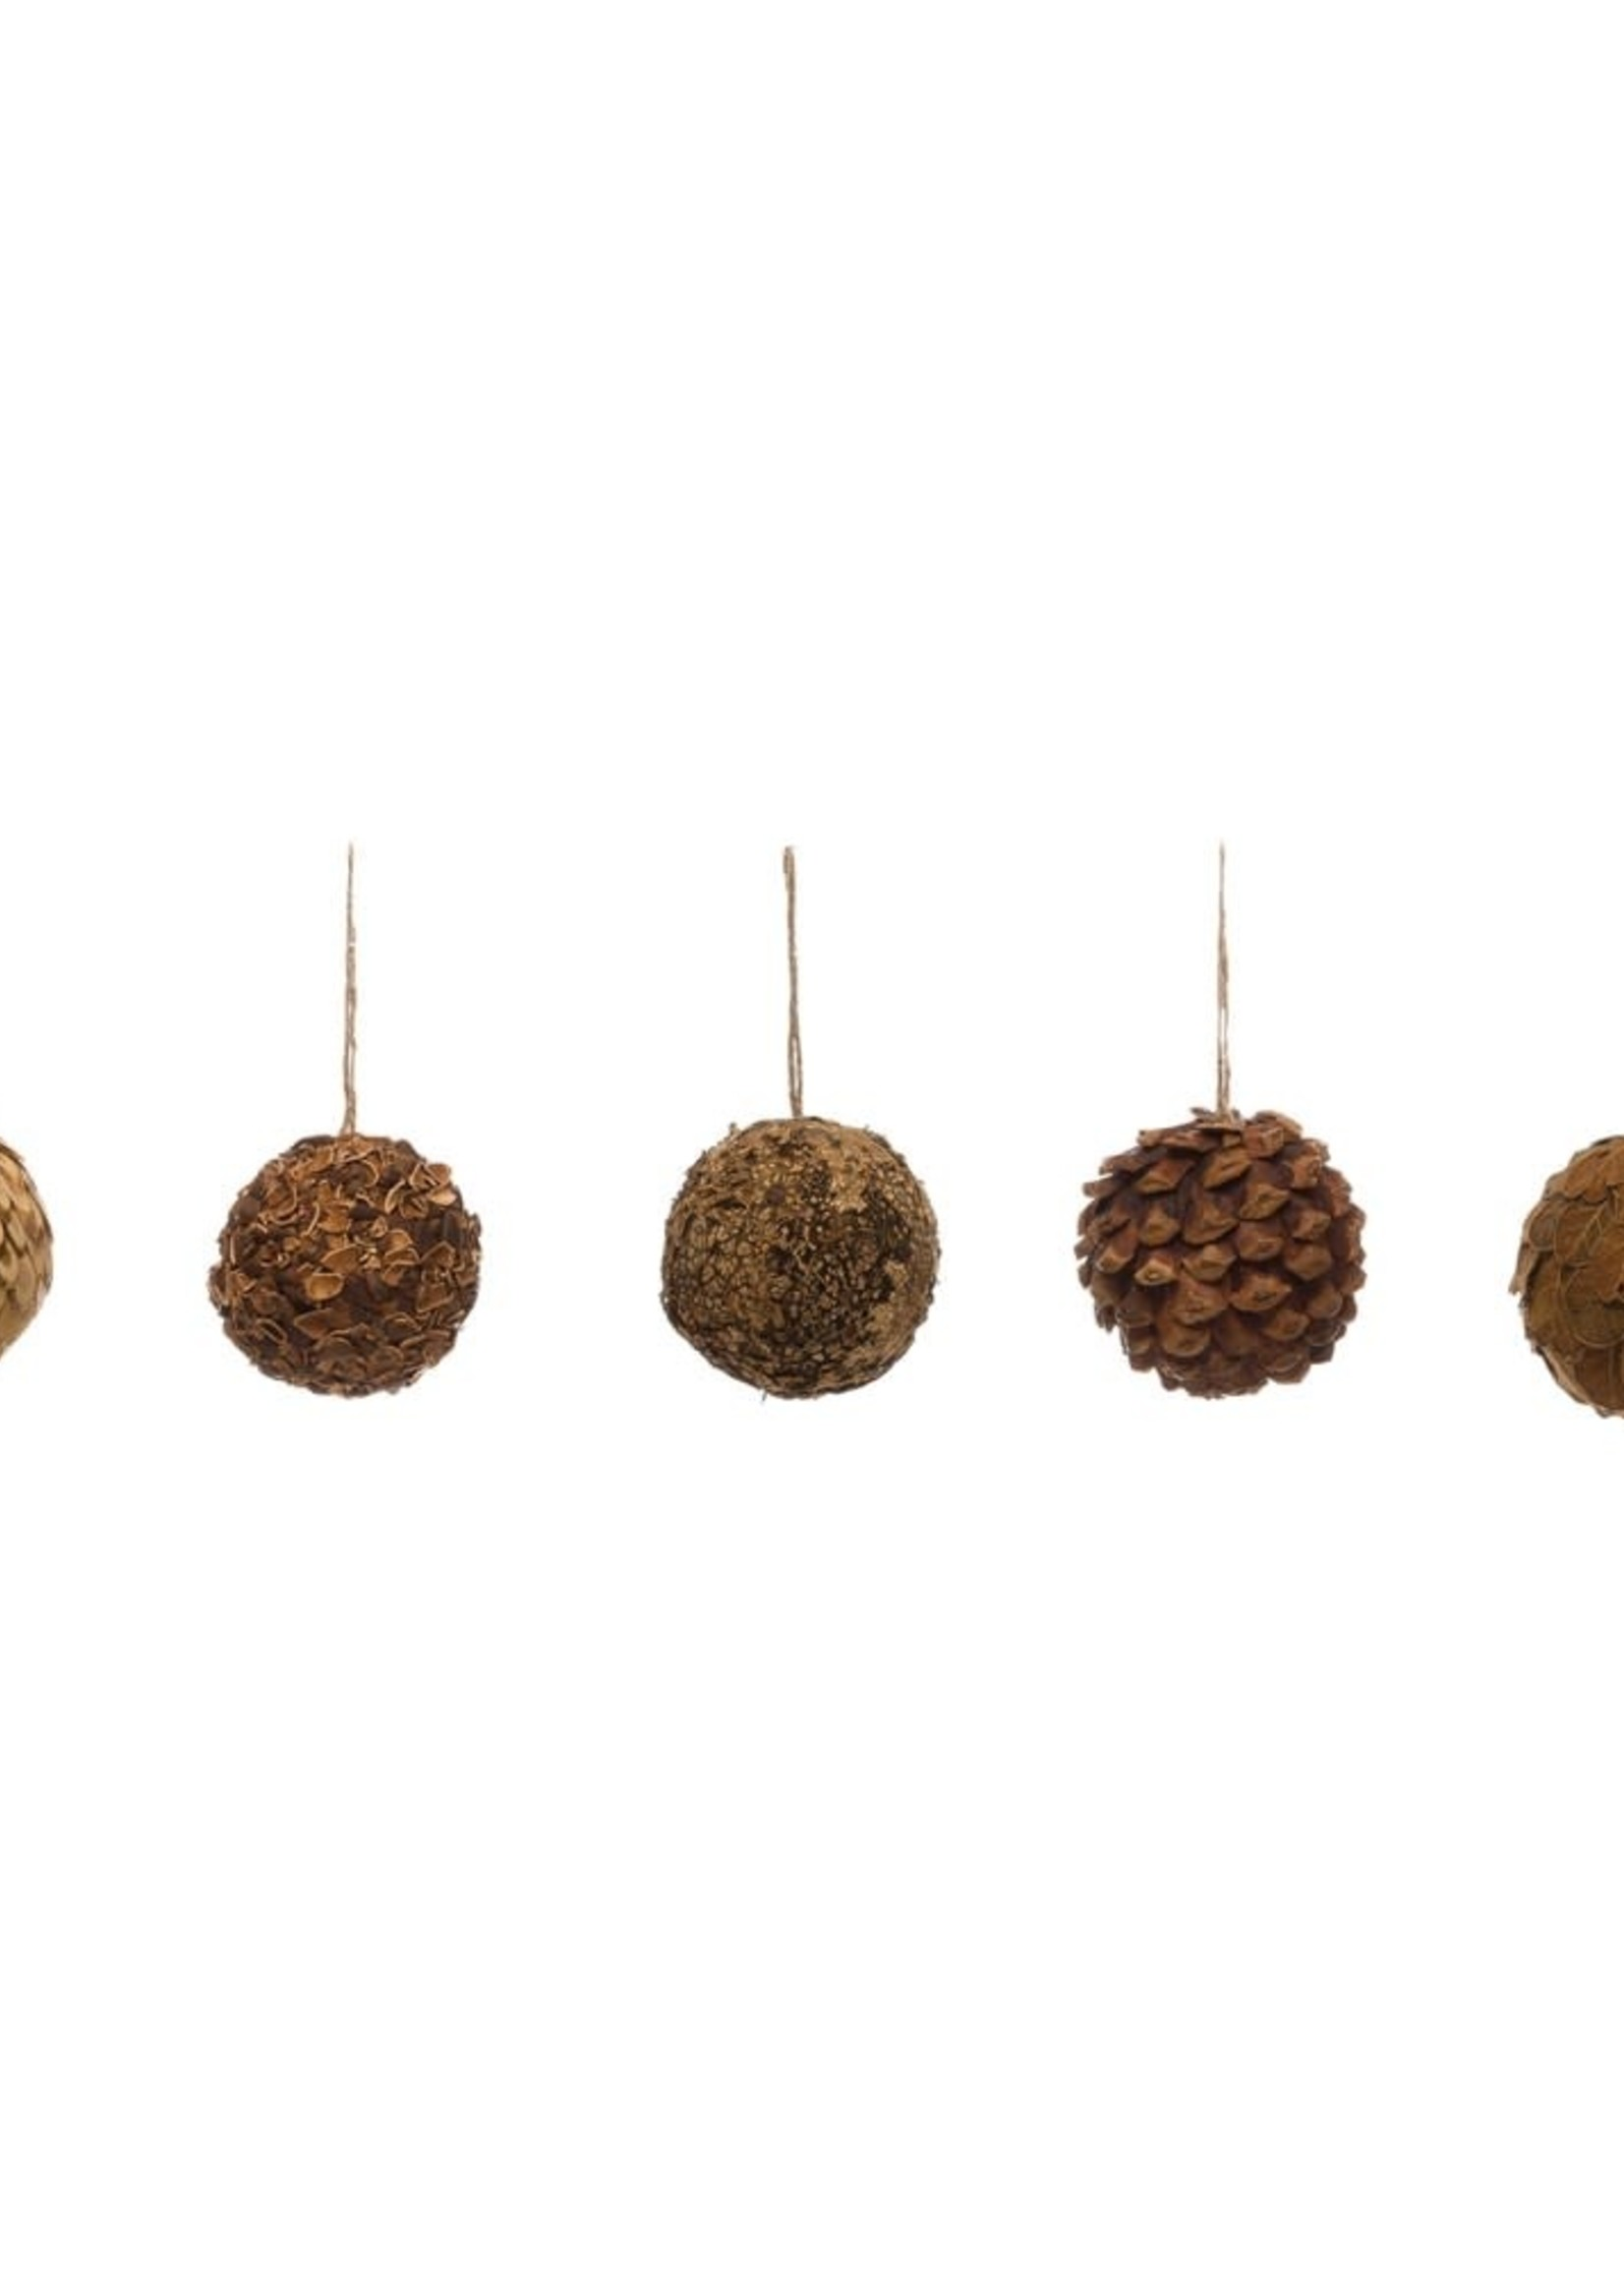 Round Dried Natural Greenery Ball Ornament, 5 Styles